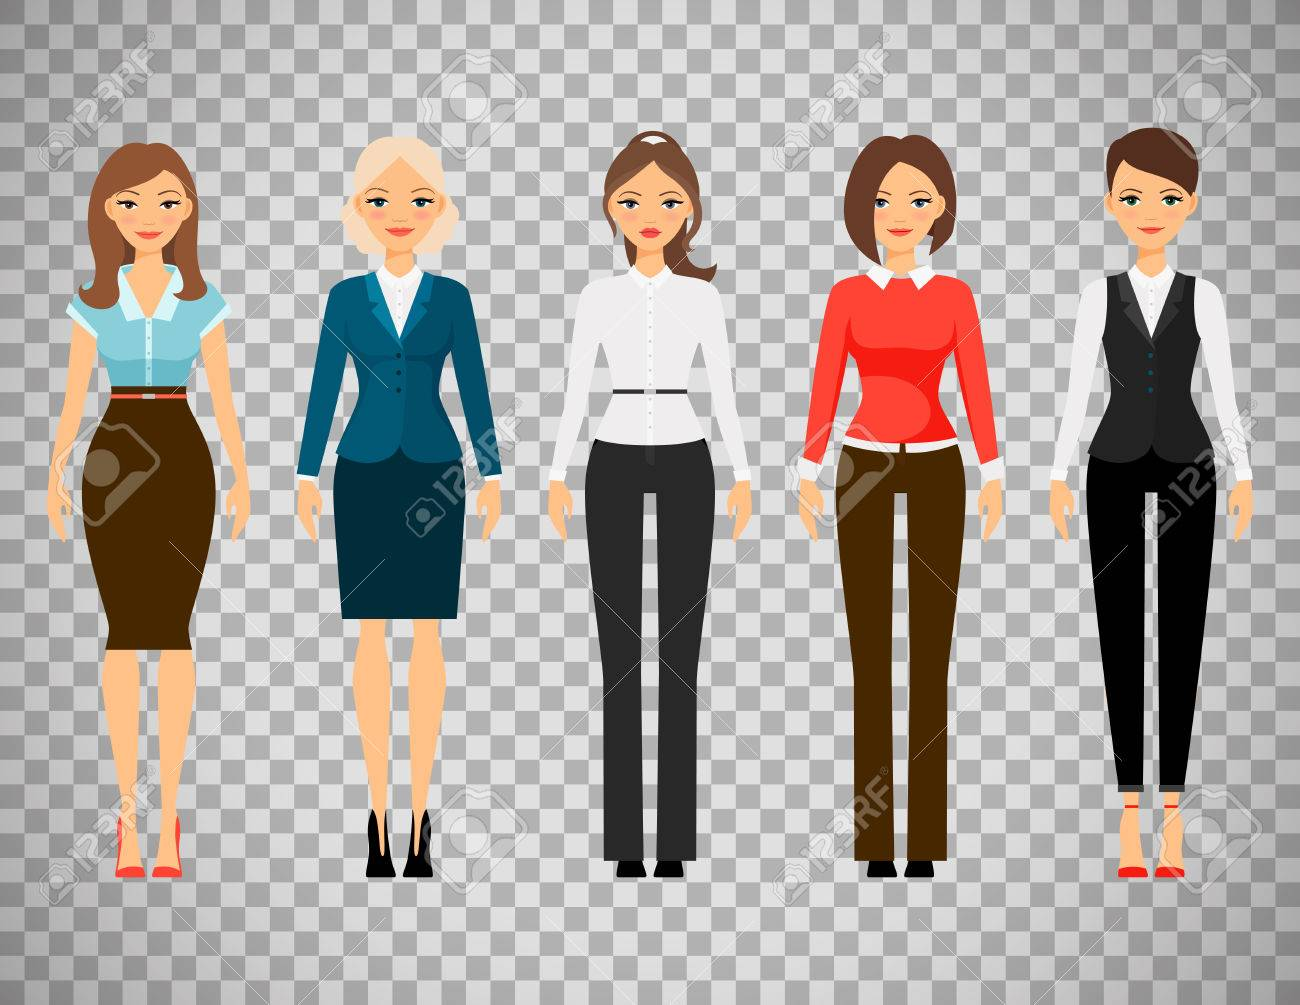 Women in office dress code clothes icons isolated on transparent..